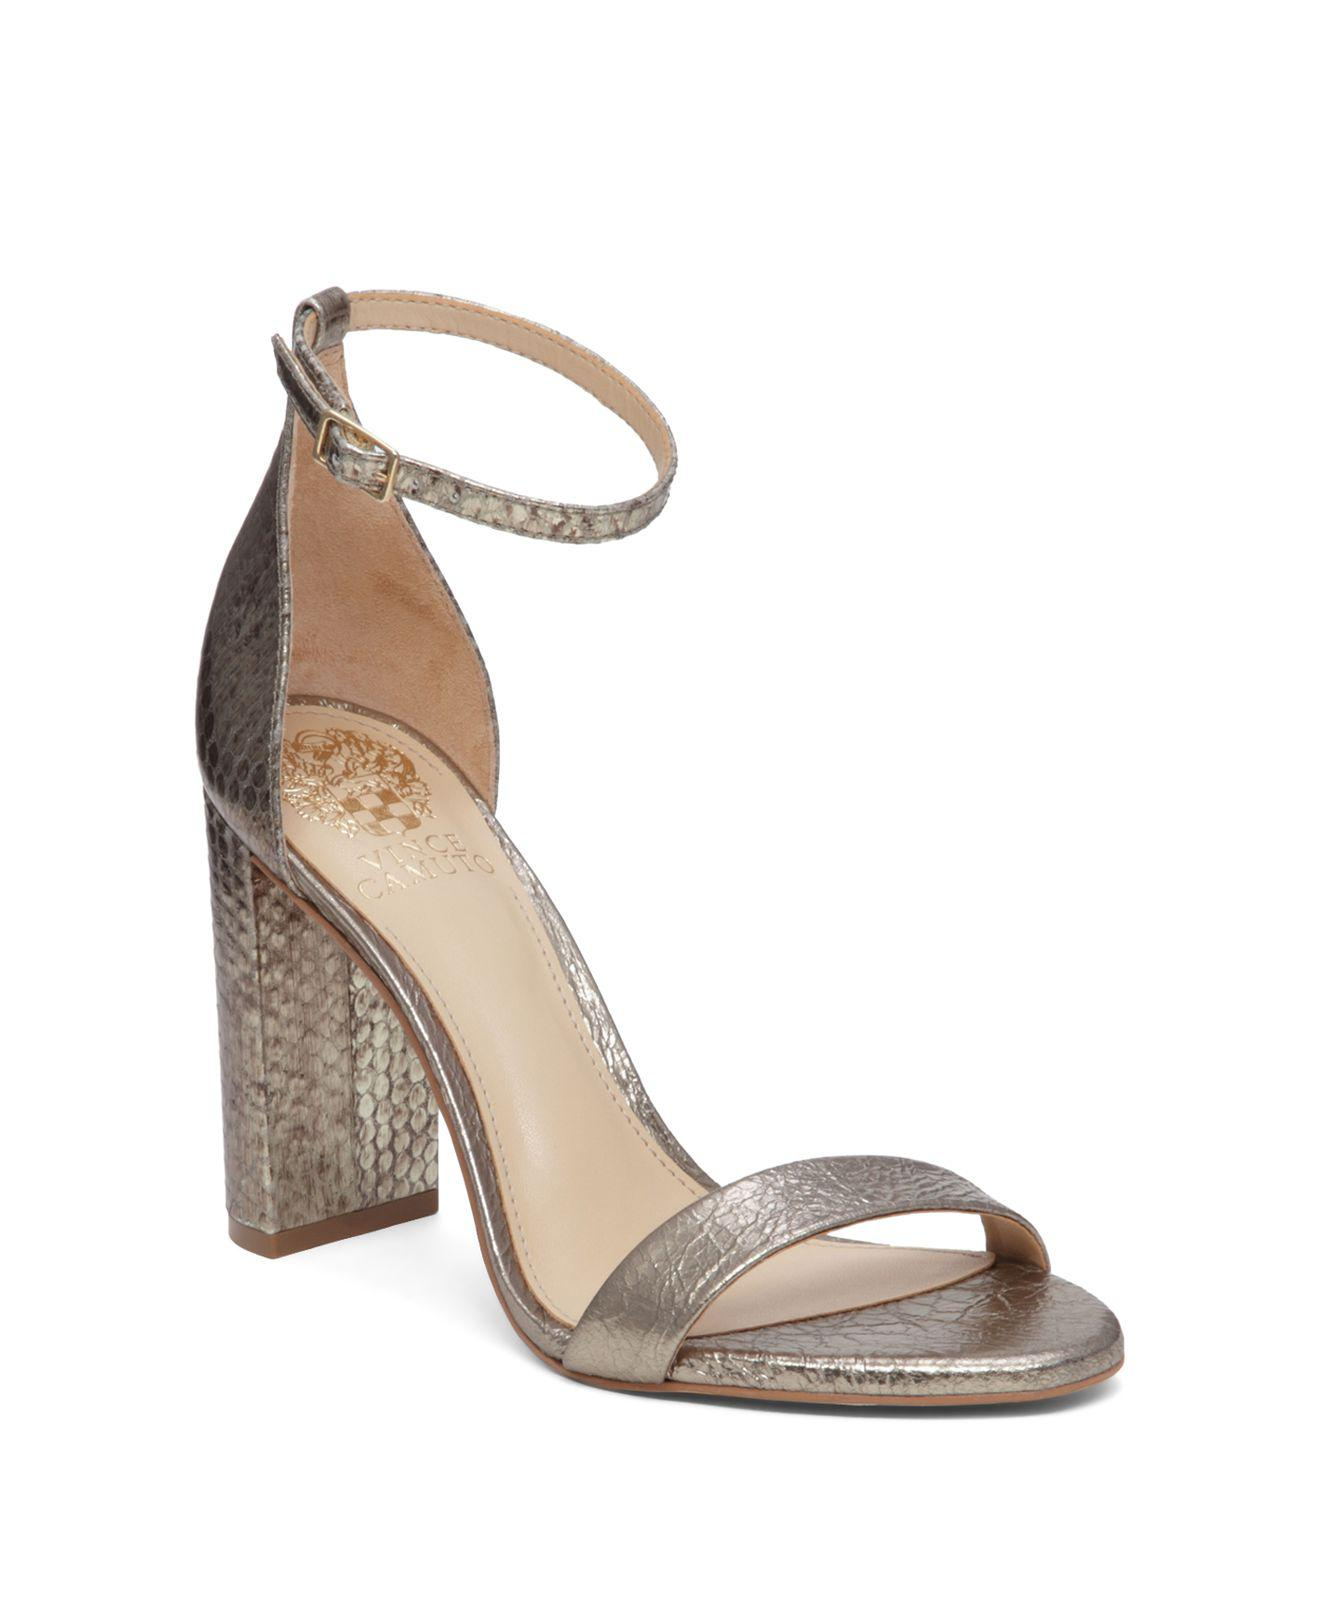 Vince Embossed Ankle-Strap Sandals 2015 new online 4vykl7bDy